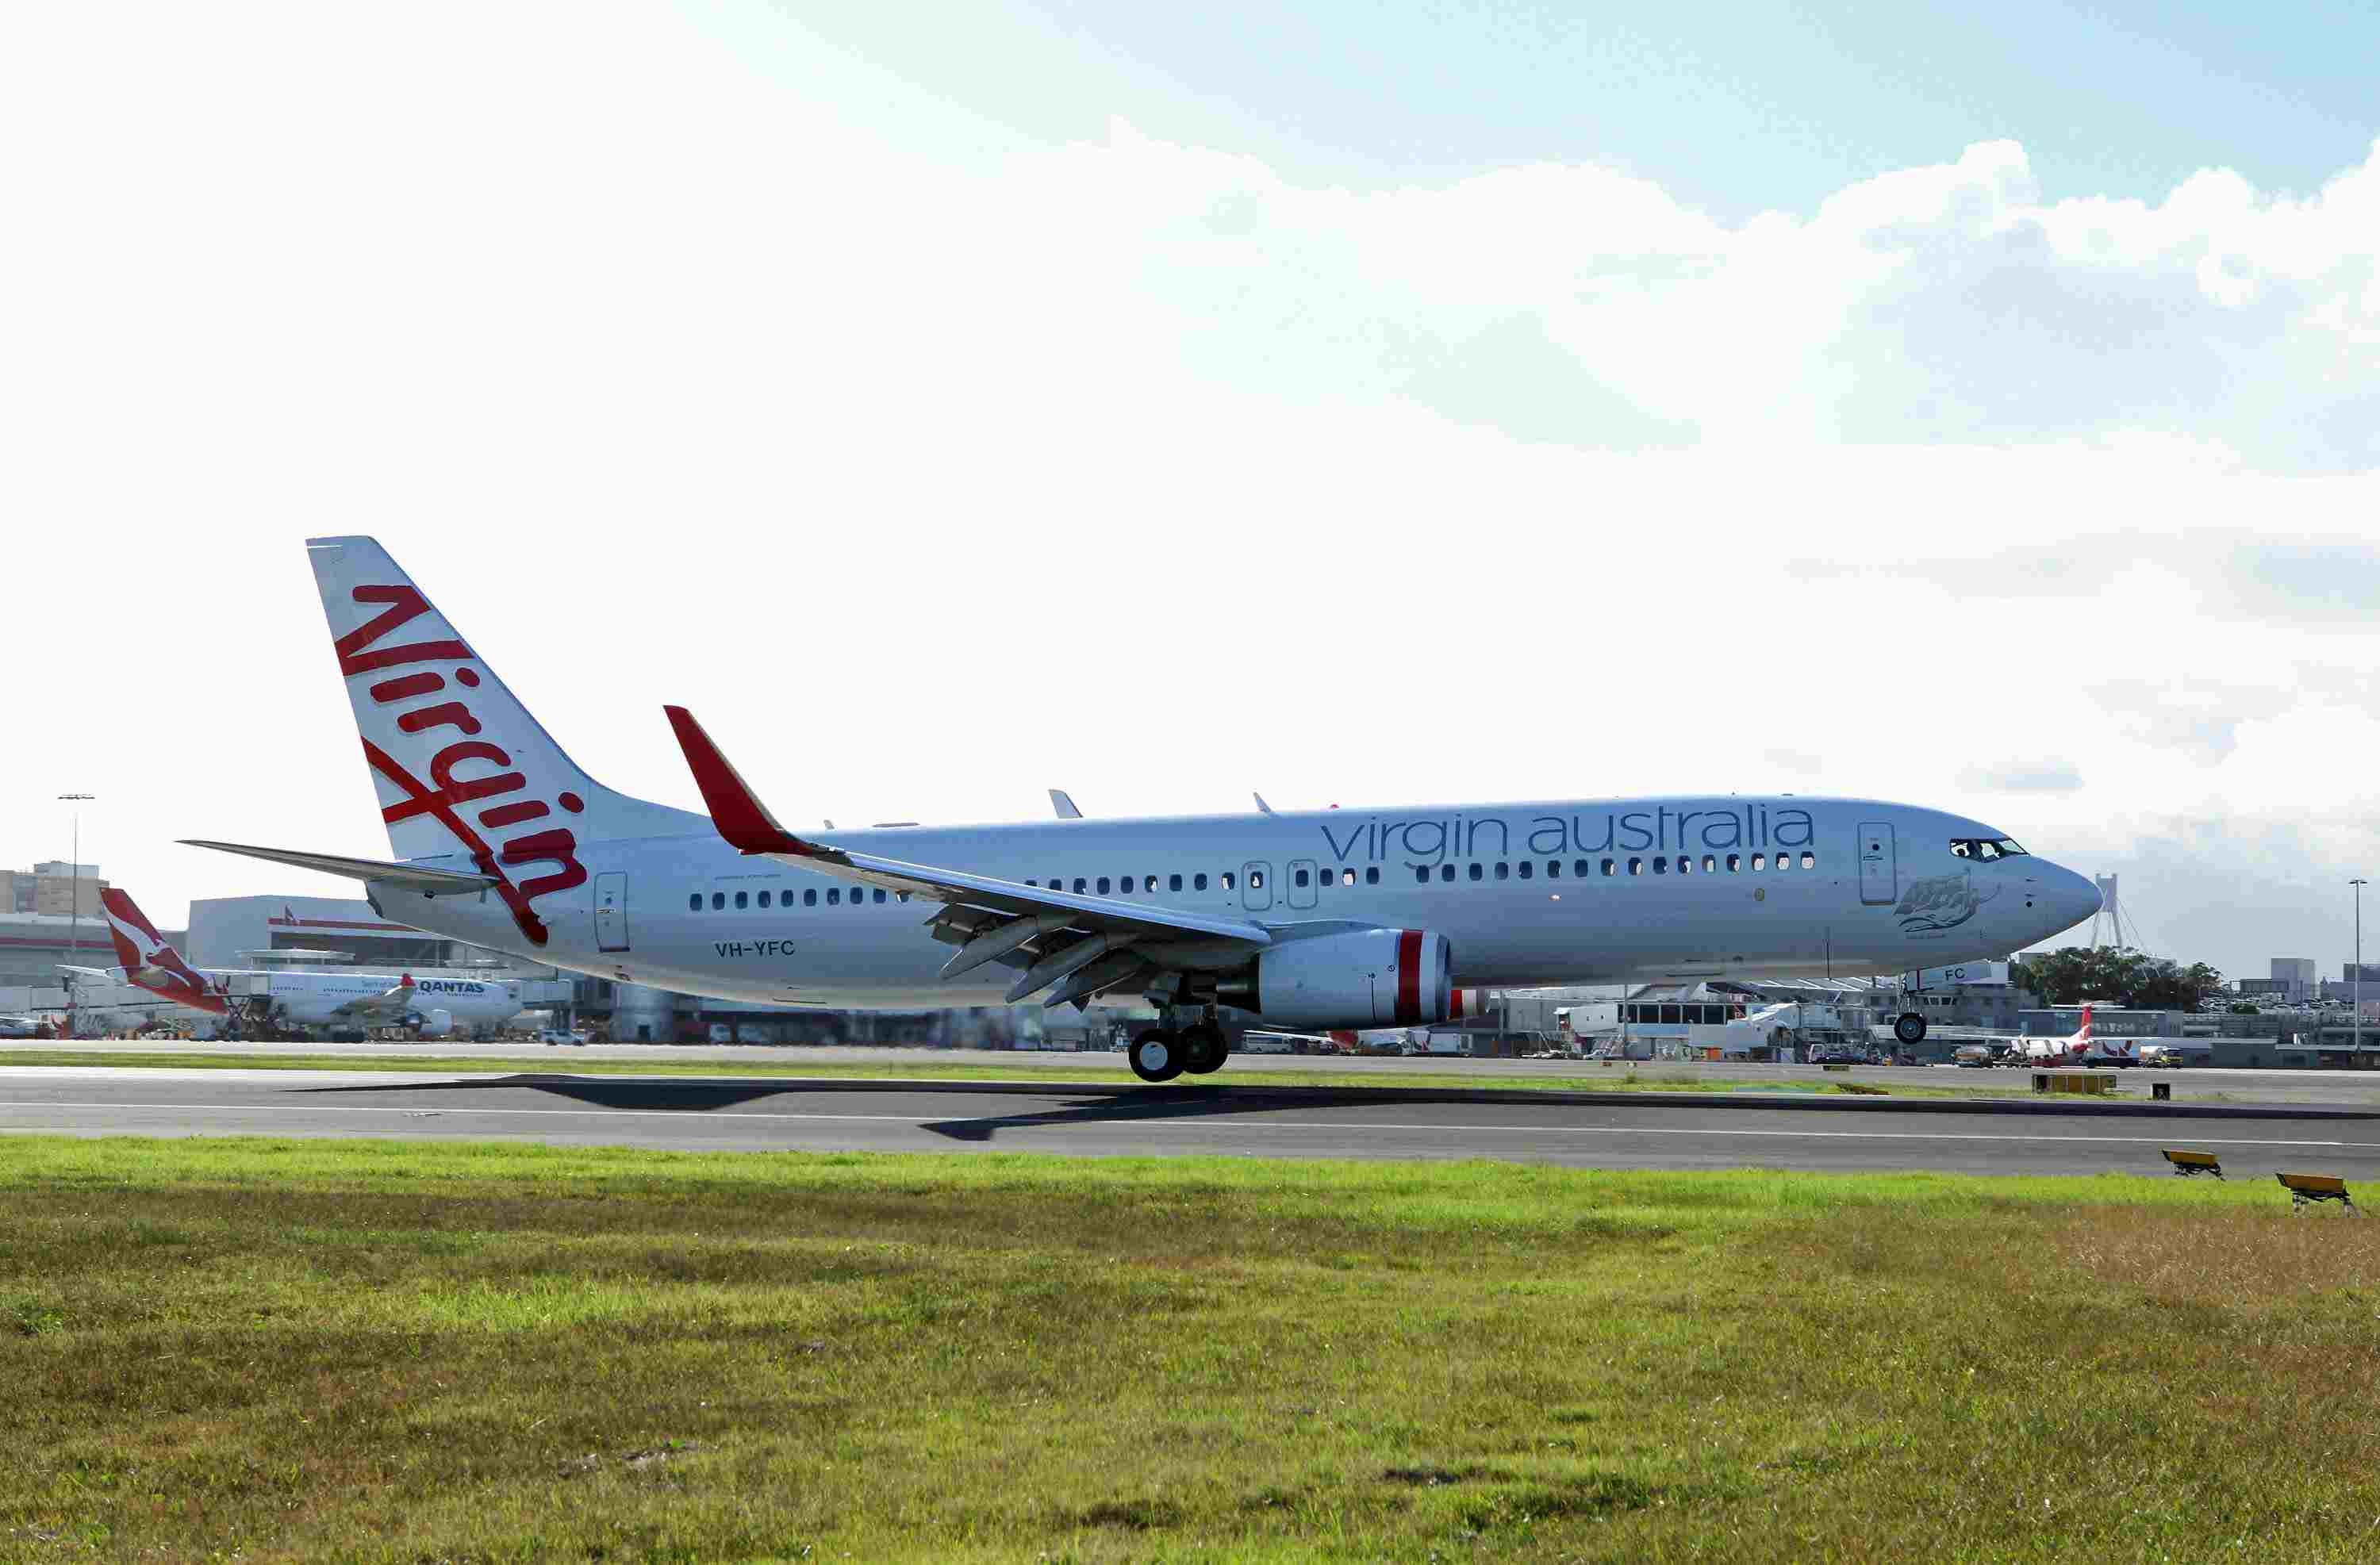 Virgin Australia offers low-cost air travel options.